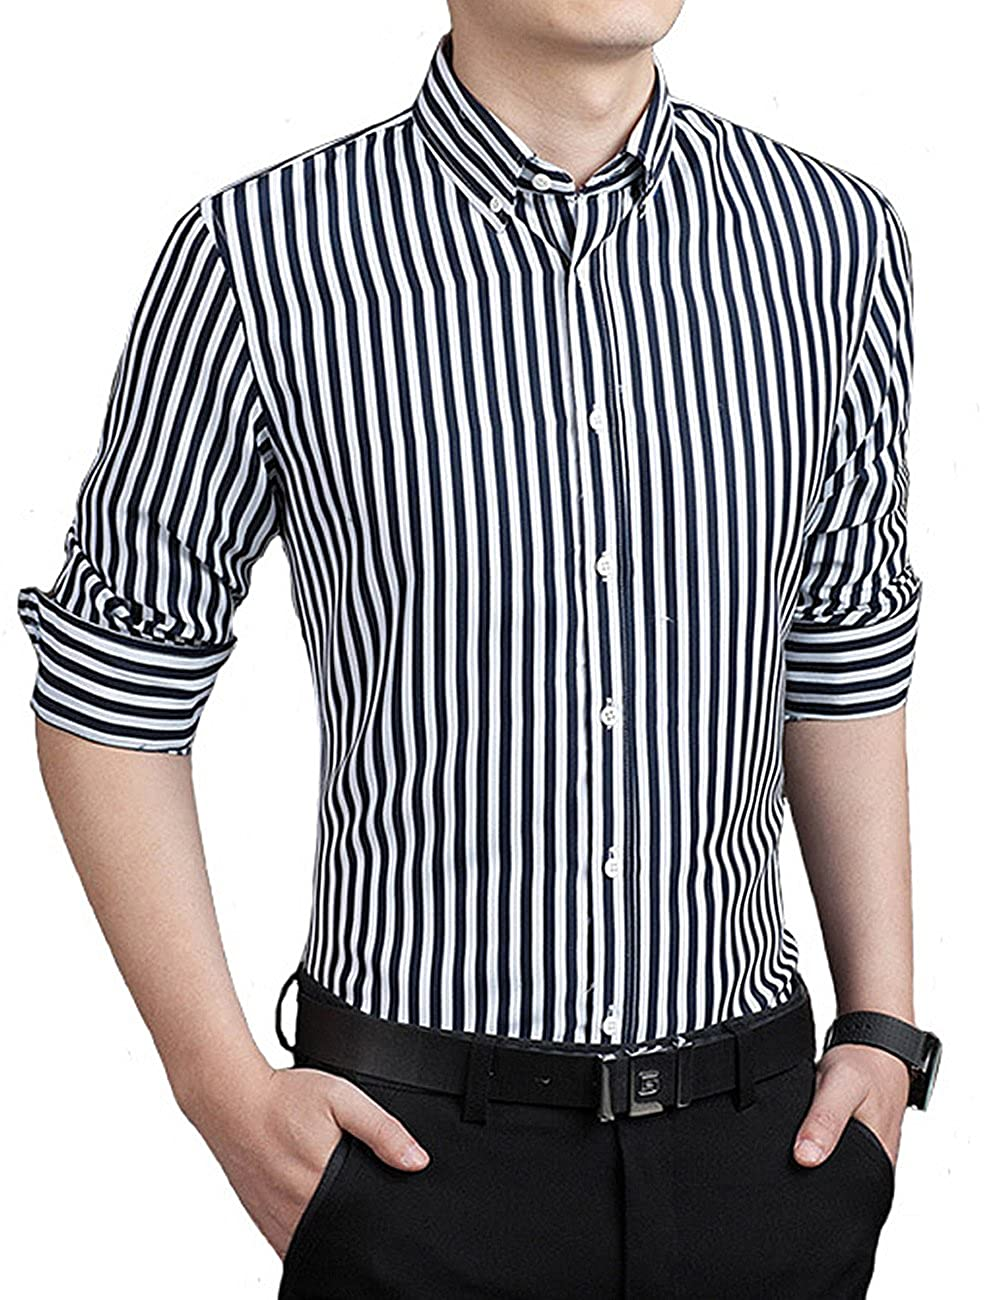 d96f581a190 Amazon.com  ERZTIAY Men s Casual Business Vertical Striped Button Down Long  Sleeve Dress Shirts  Clothing